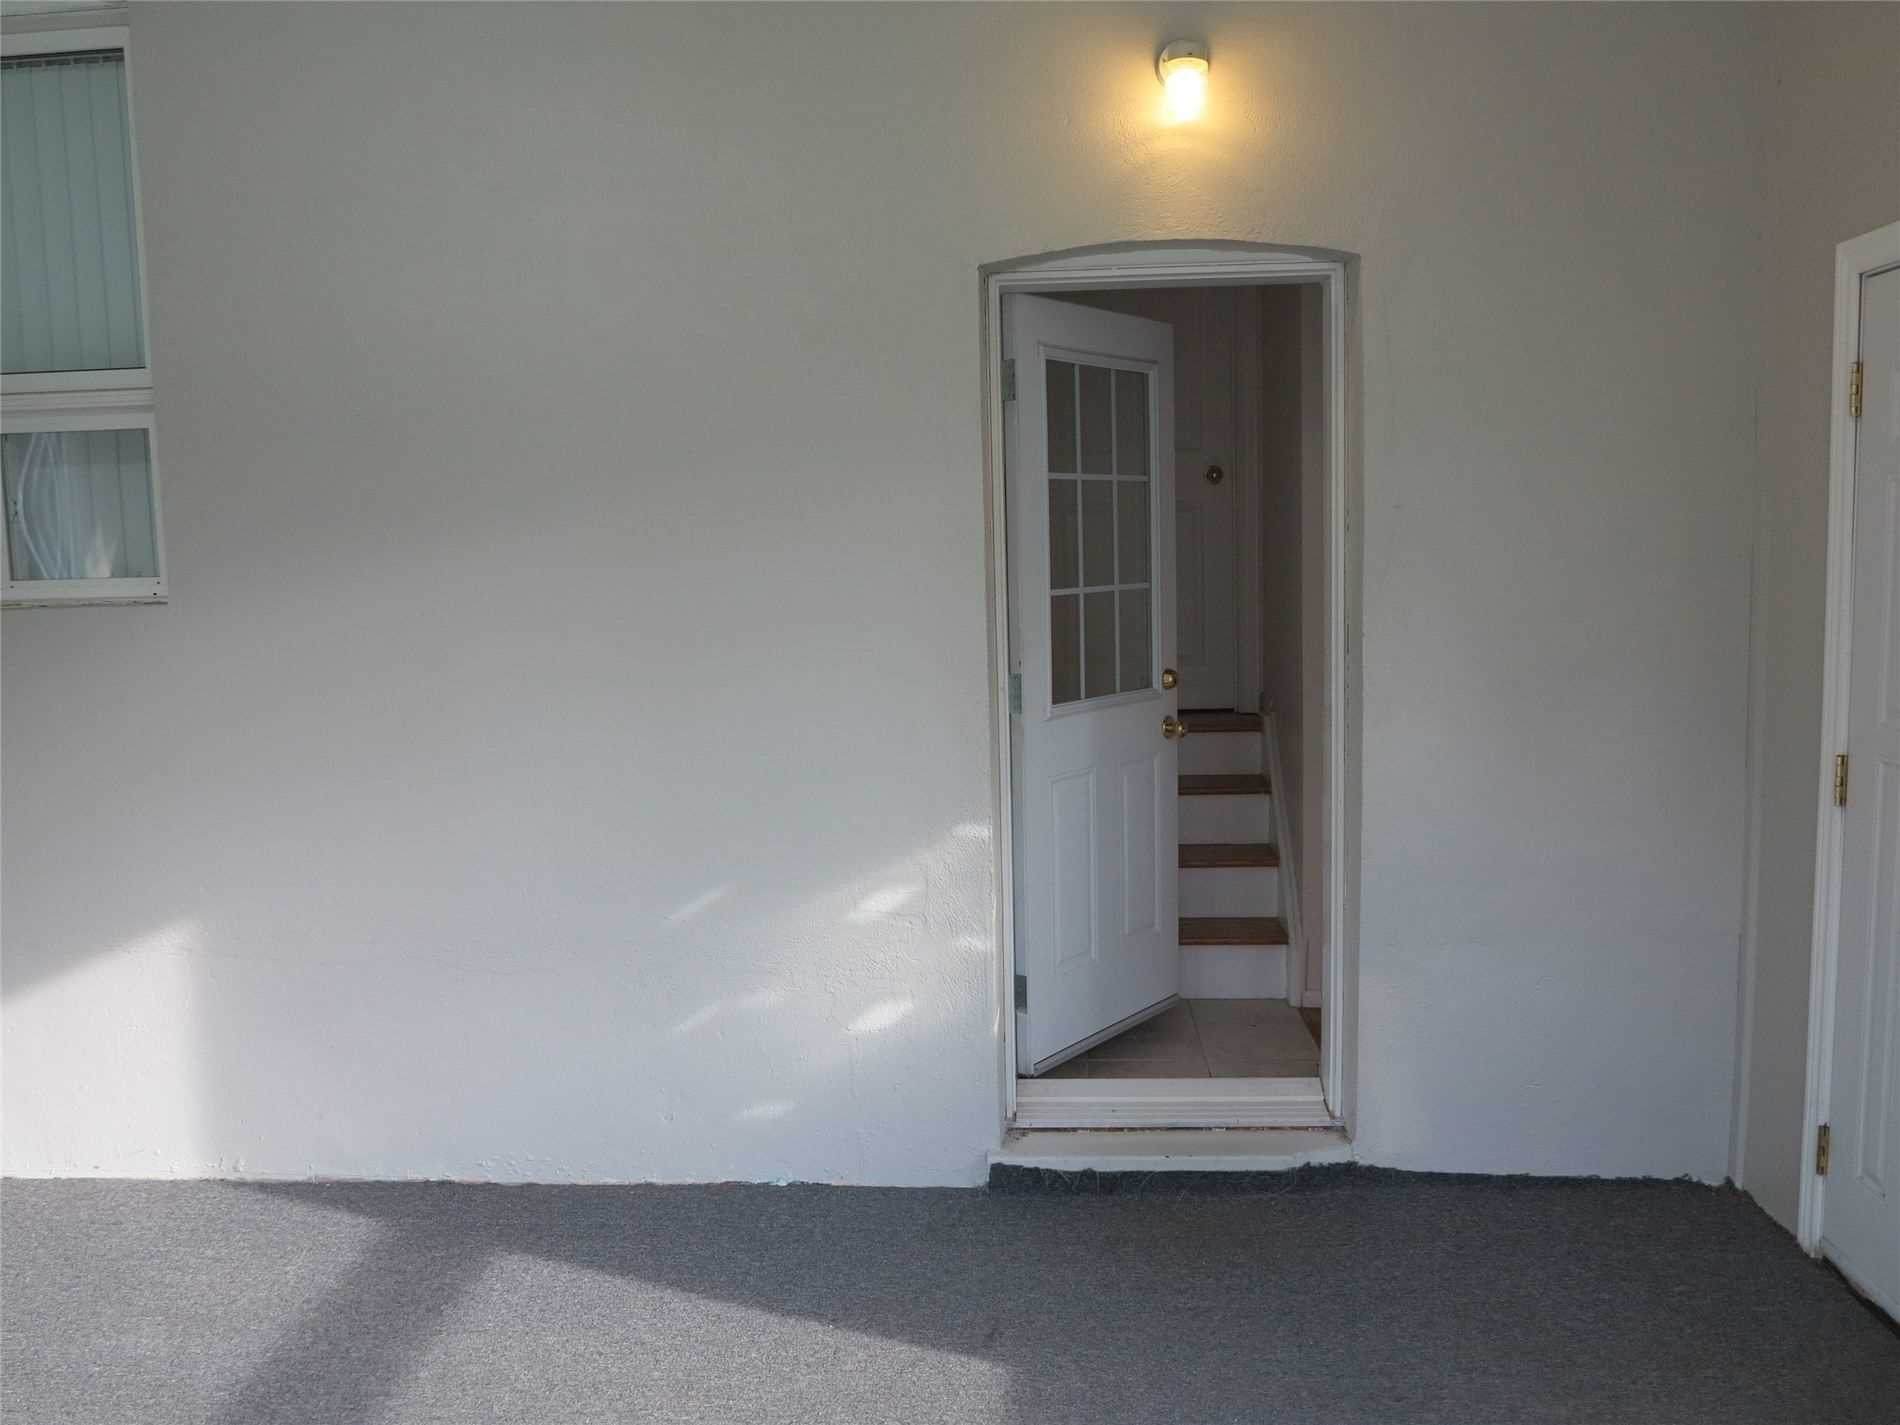 Image 19 of 30 showing inside of 3 Bedroom Detached Bungalow for Lease at 456 Drewry Ave, Toronto M2R2K7